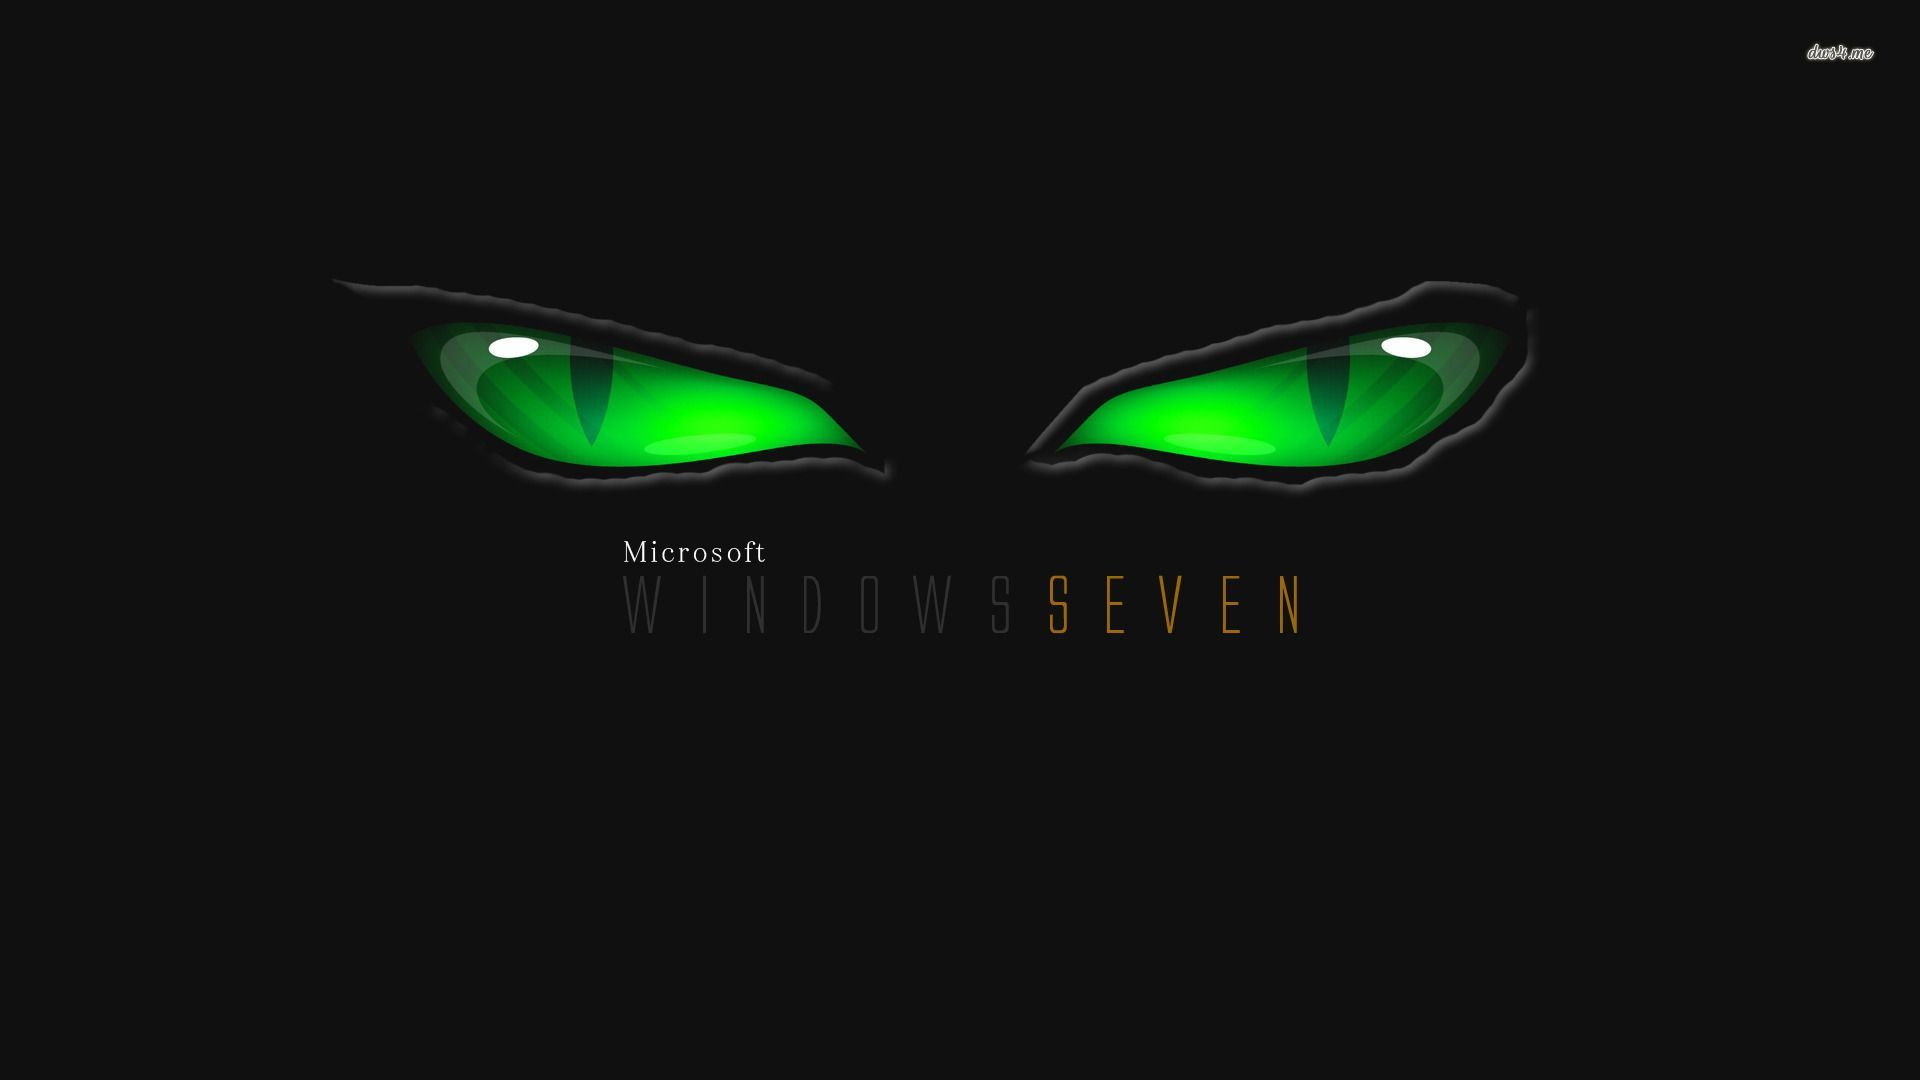 microsoft windows 7 full hd wallpaper attachment 1146 amazing